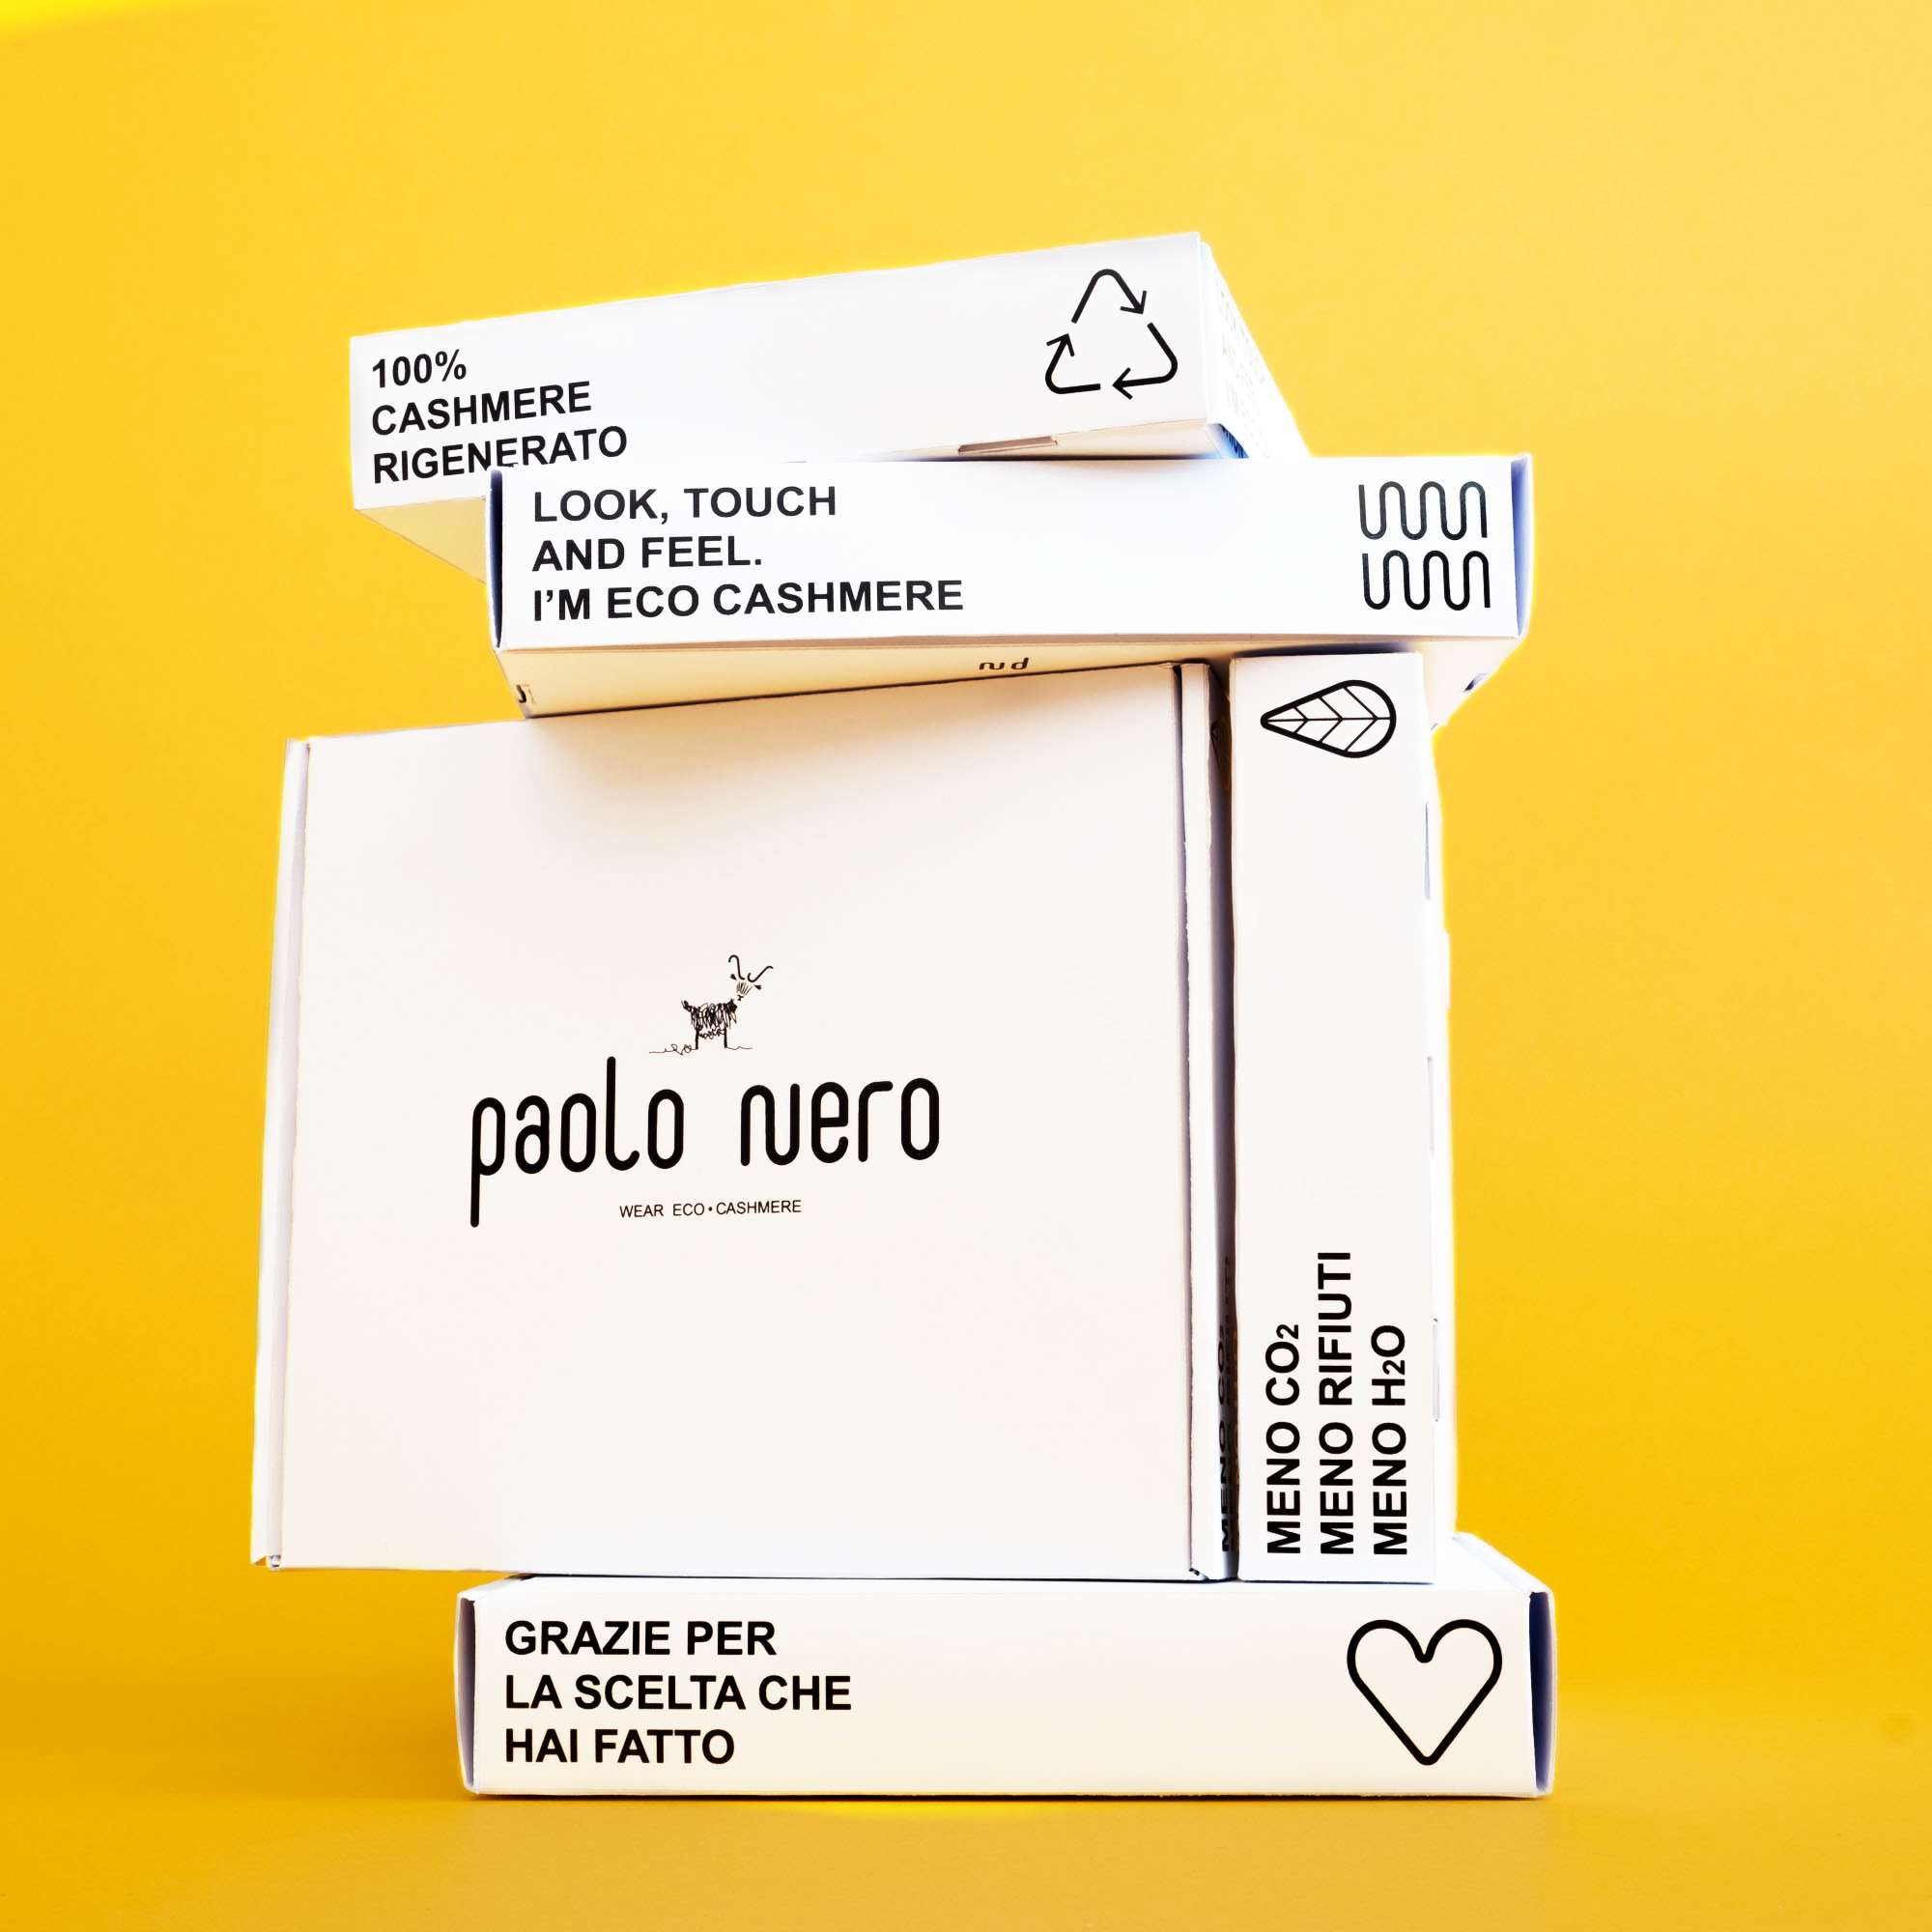 Paolo Nero packagining